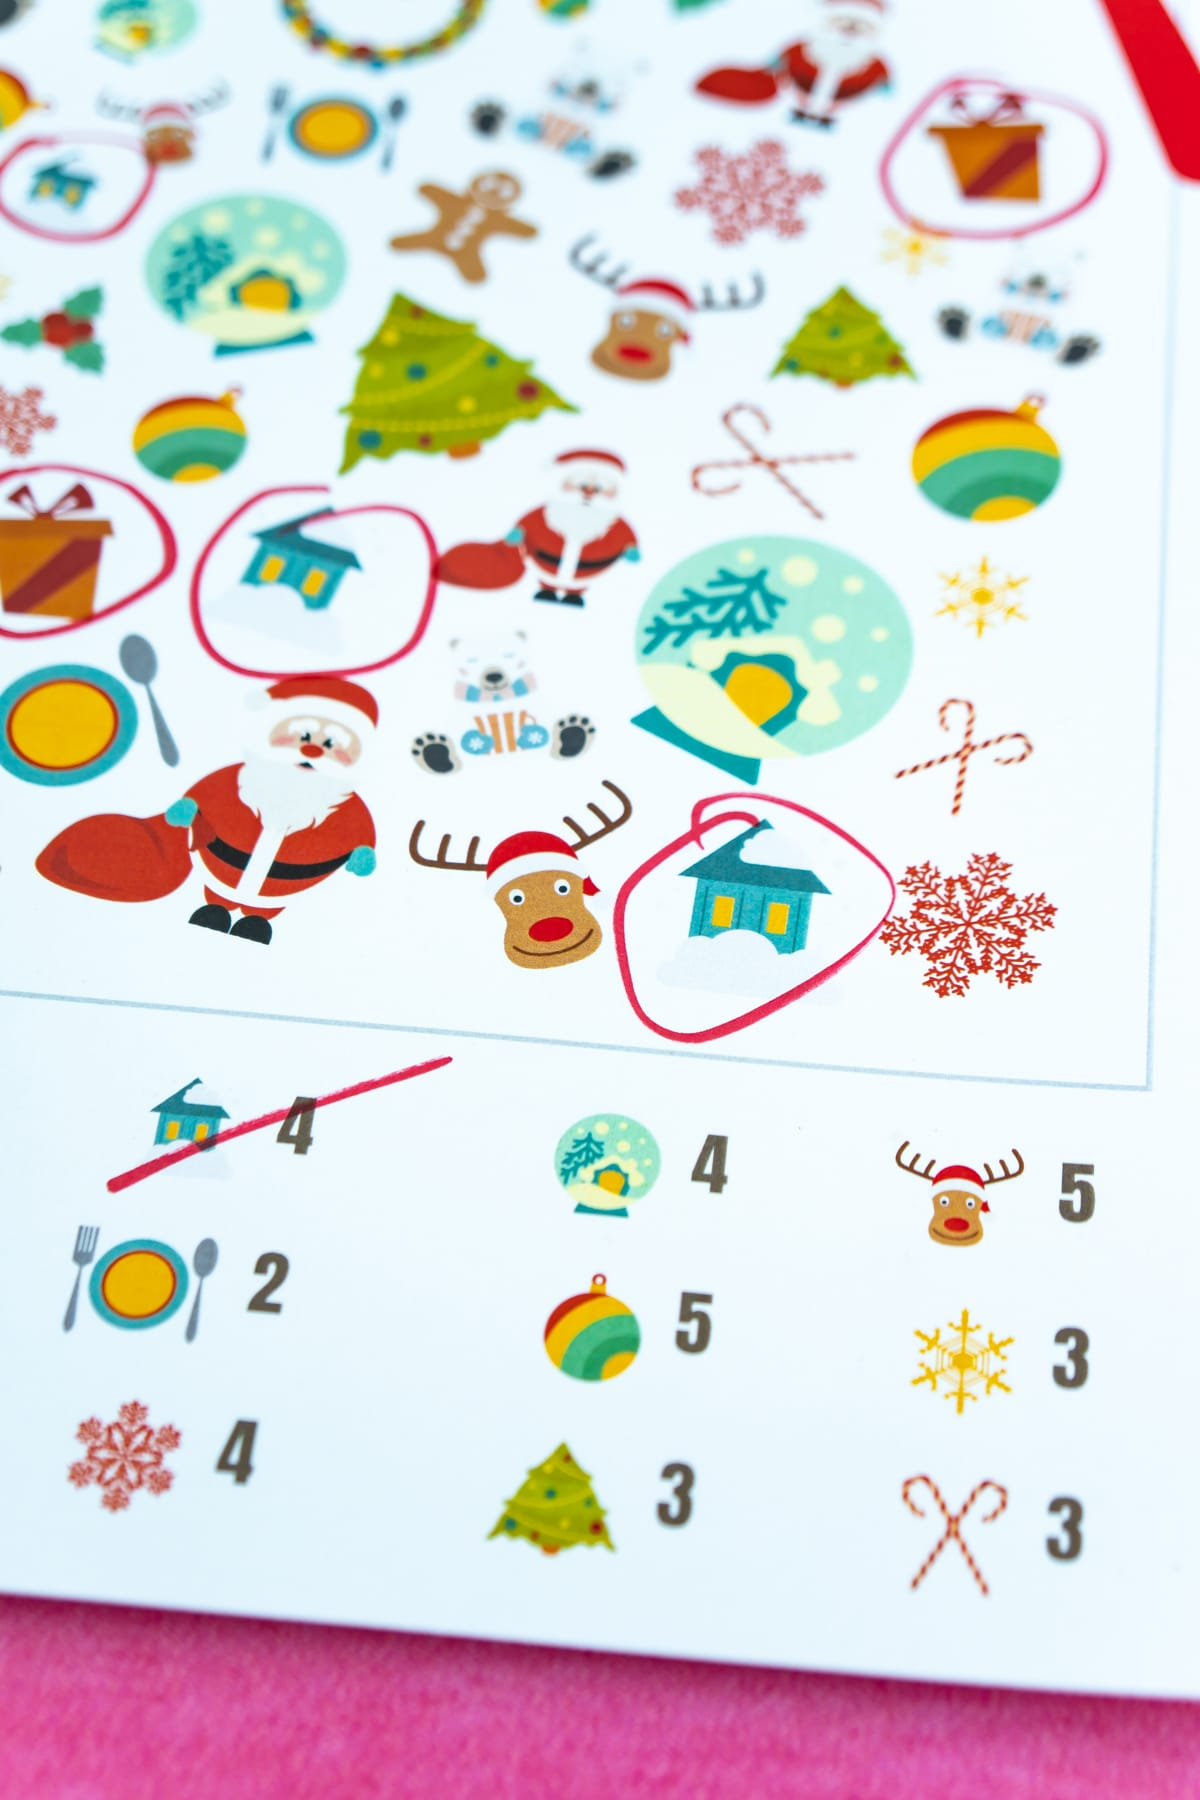 Christmas i-spy game with items circled in the picture